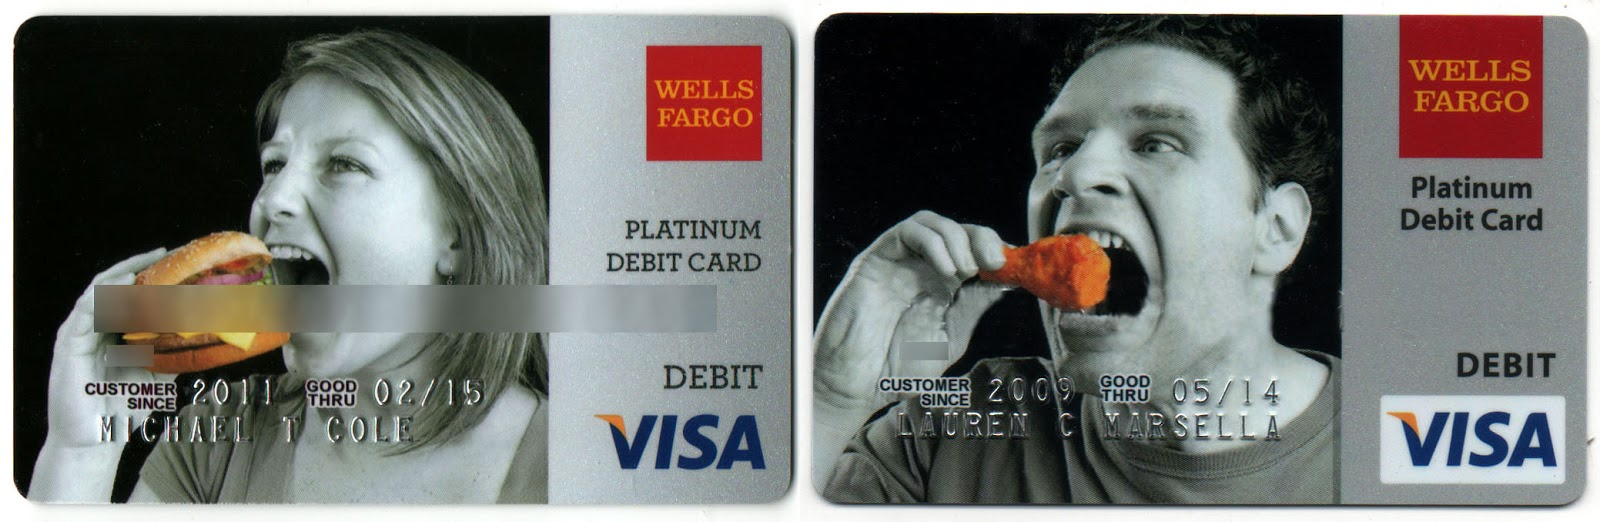 Wells Fargo Small Business Online And Business Banking 1 000 Visa